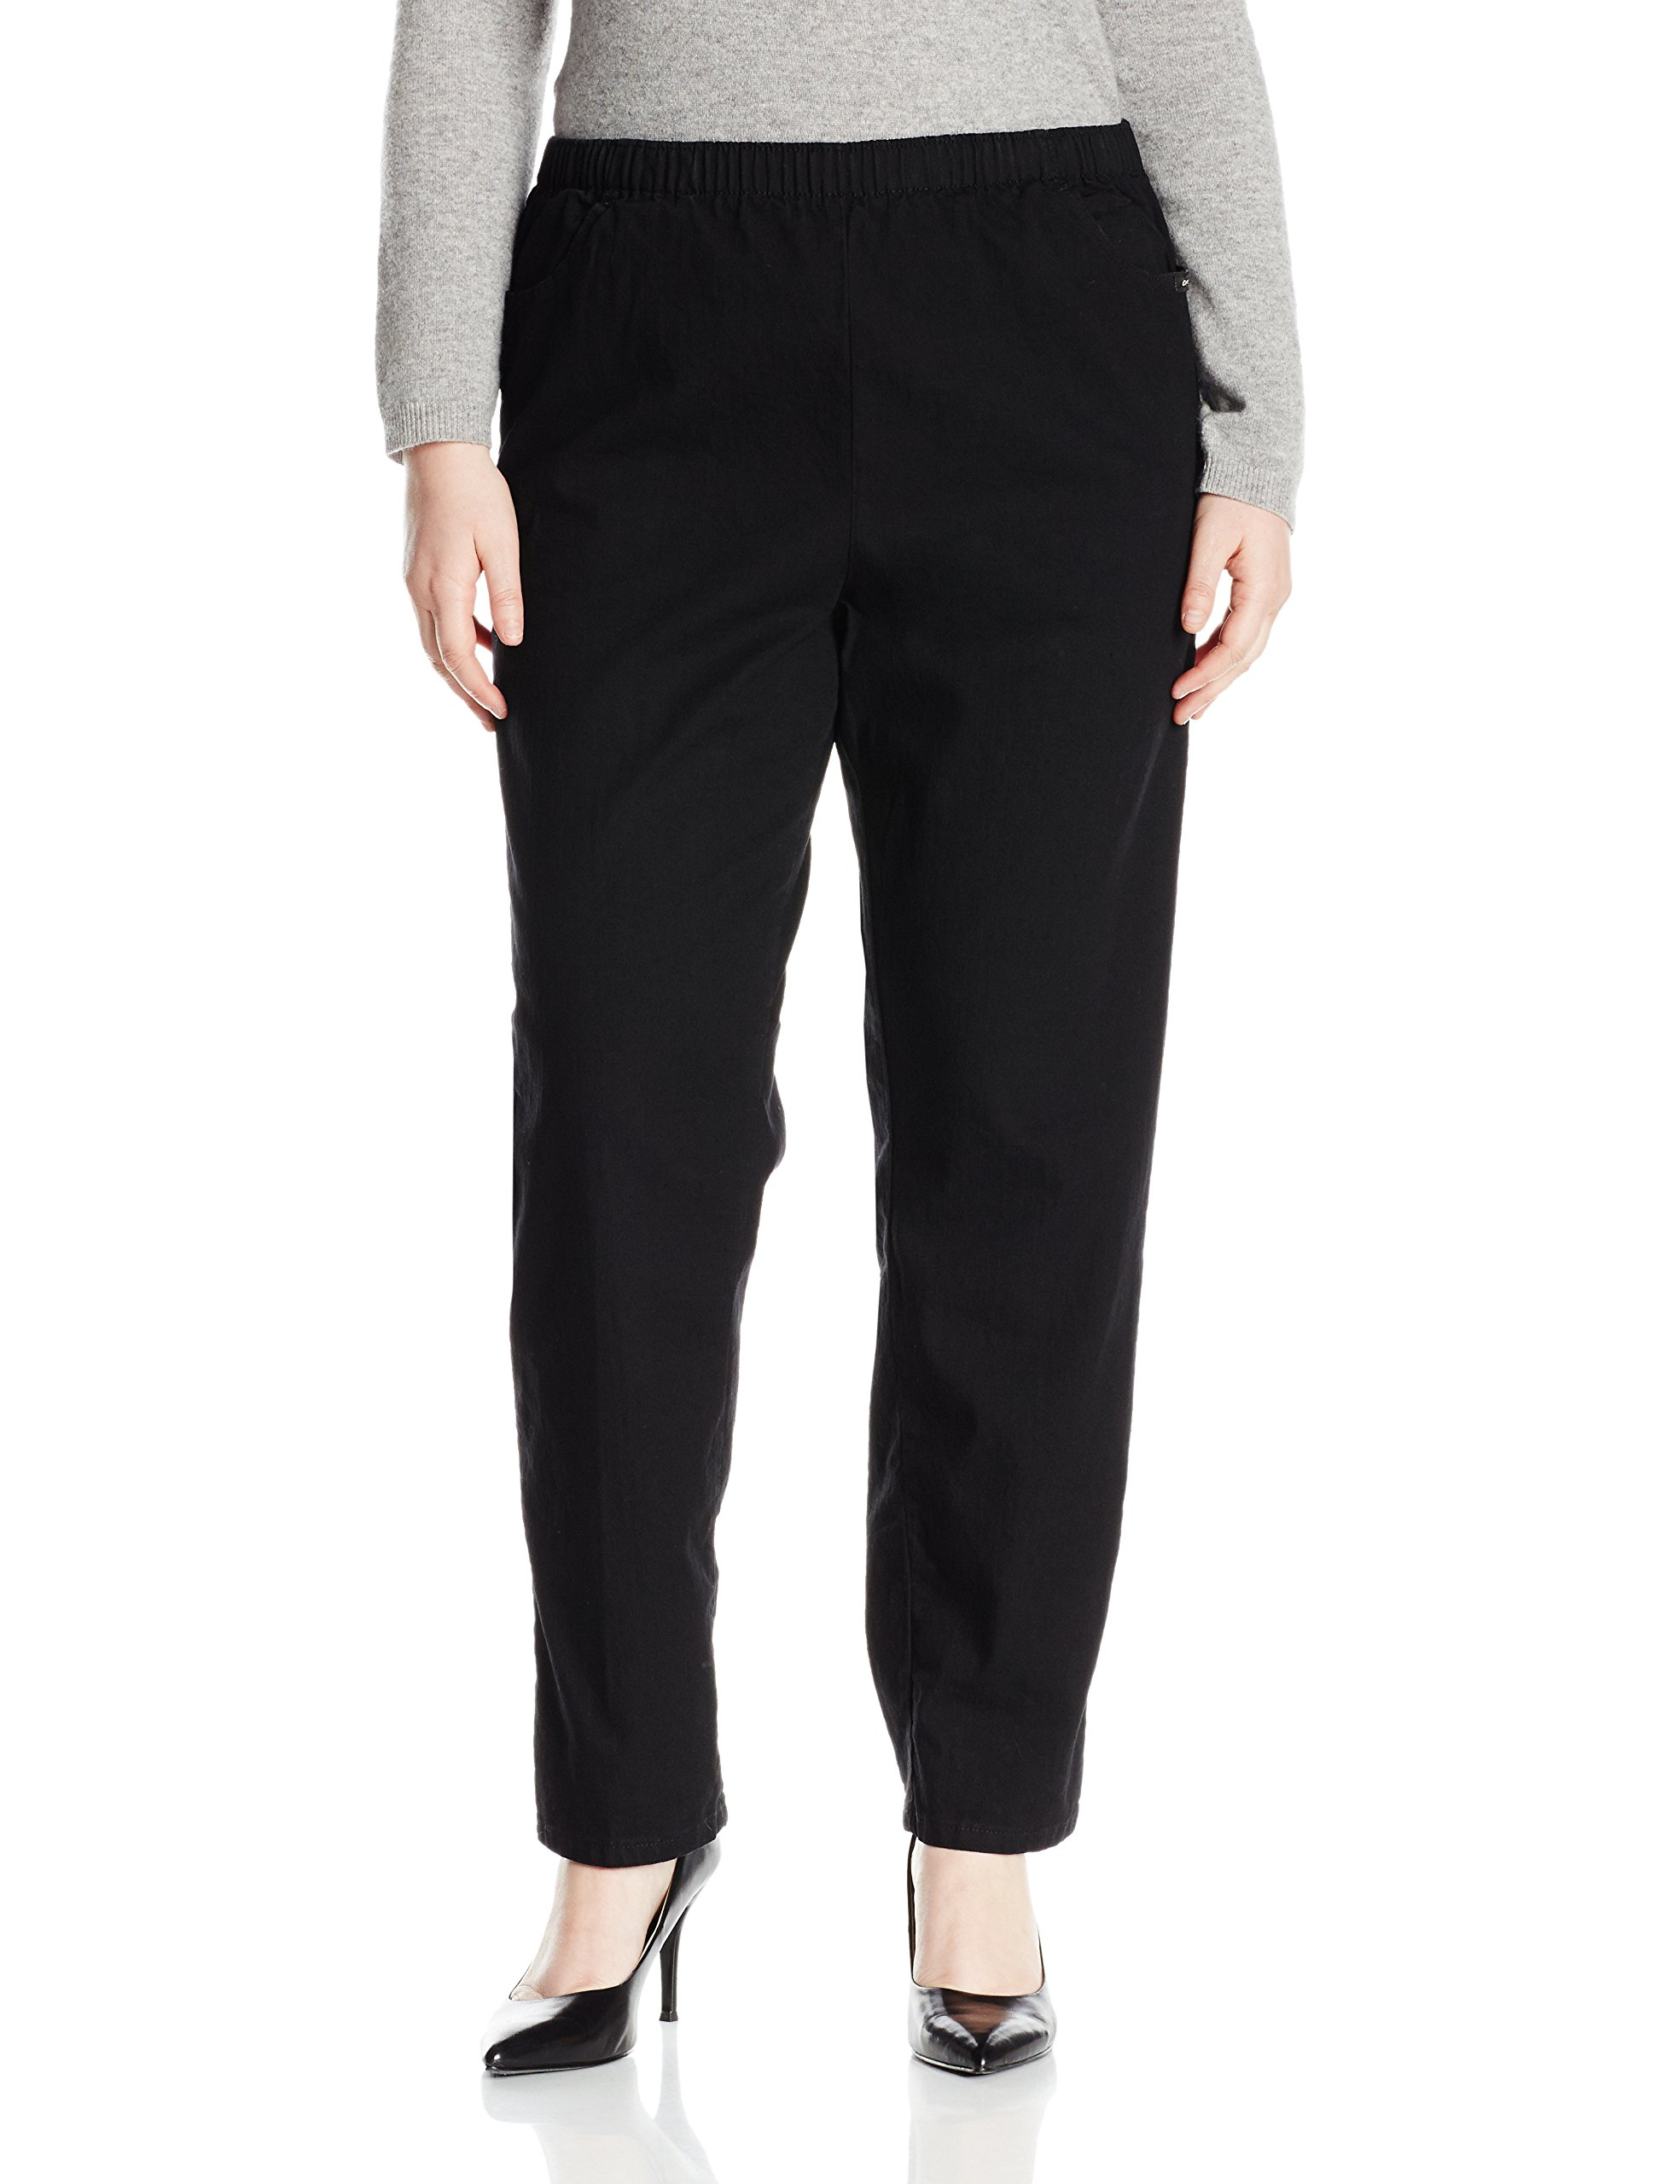 Chic Classic Collection Women's Size Plus Cotton Pull-On Pant with Elastic Waist, Black Denim, 20W